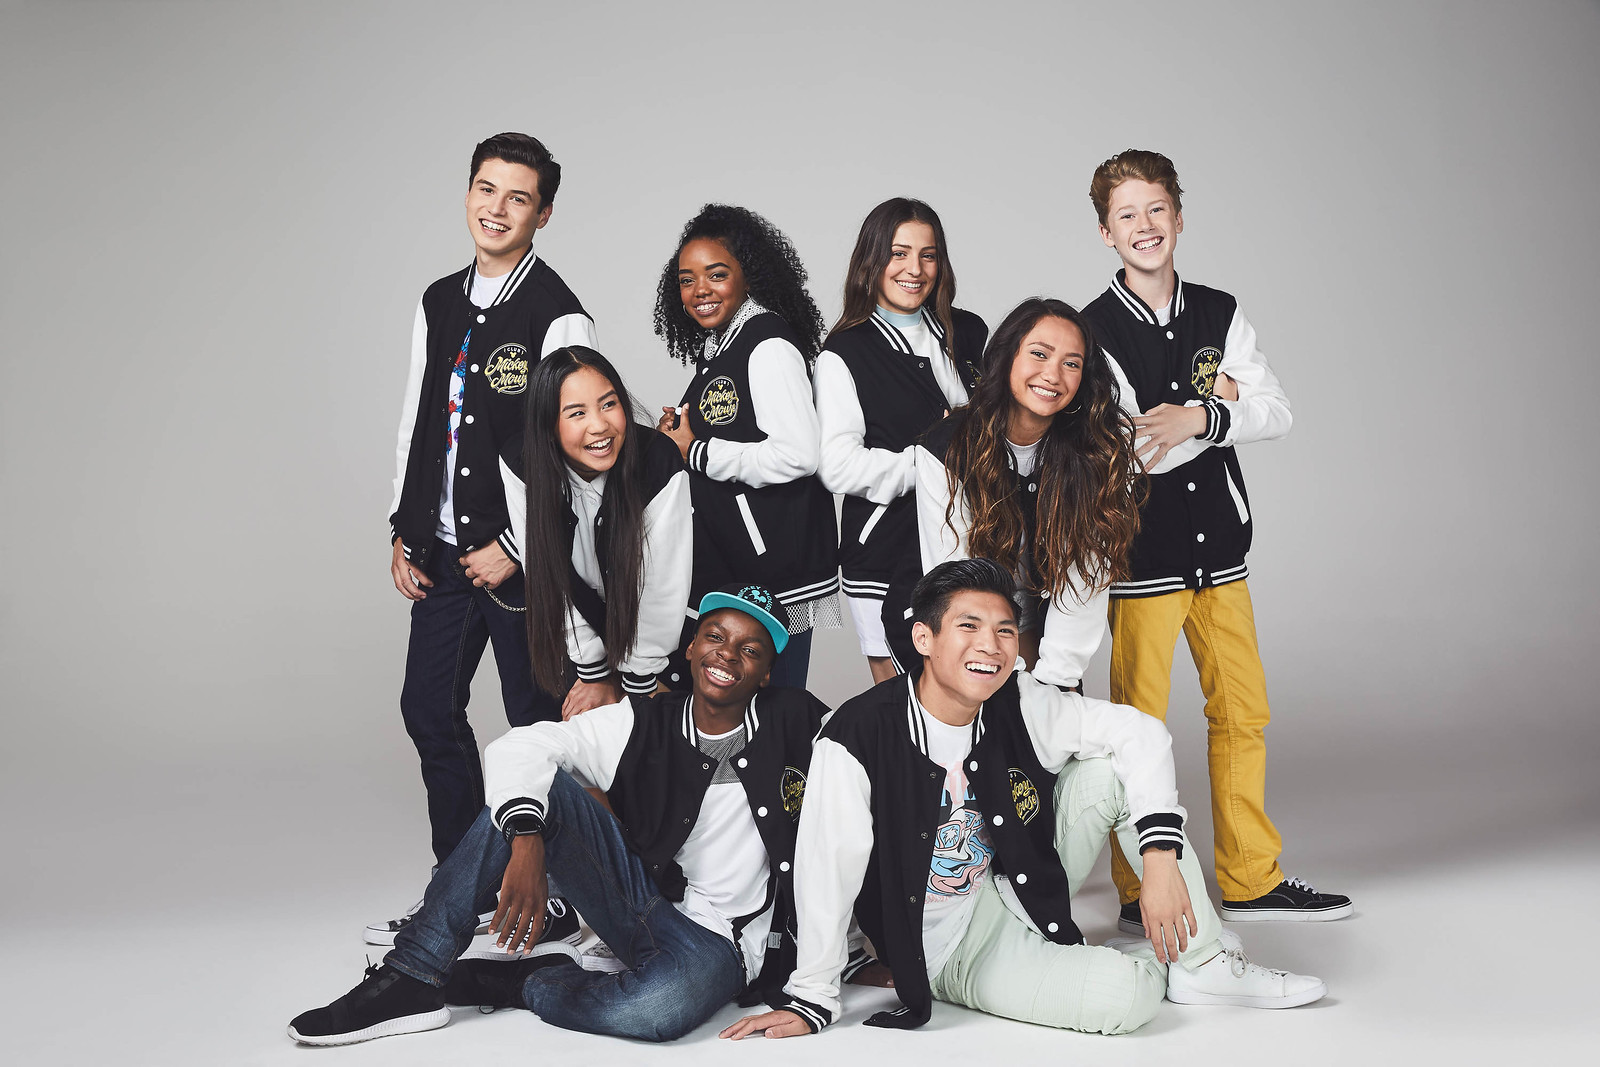 Disney Announces Full Cast for 'Mickey Mouse Club' Reboot